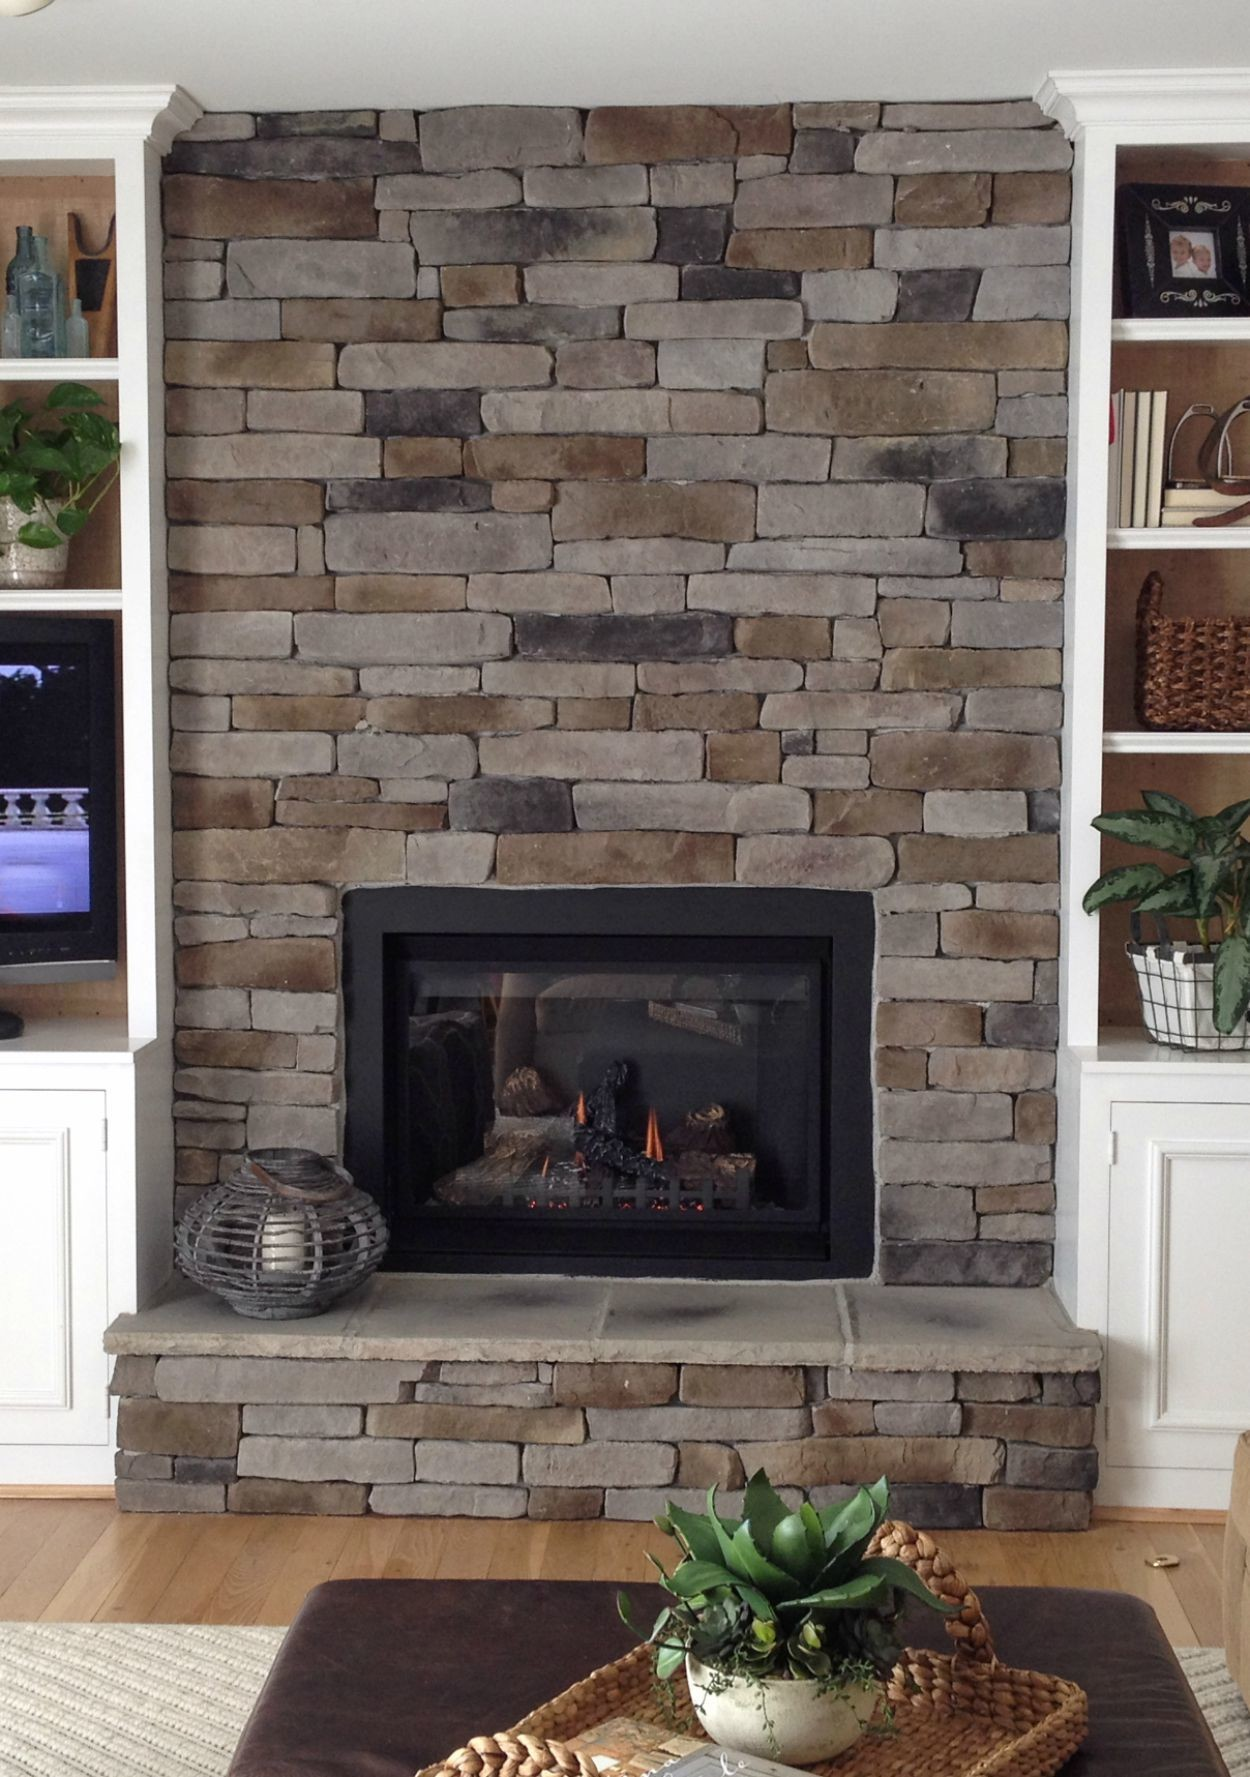 How to Create the Stacked Stone Fireplace Look on a Budget | Martha Stewart & How to Create the Stacked Stone Fireplace Look on a Budget | Martha ...